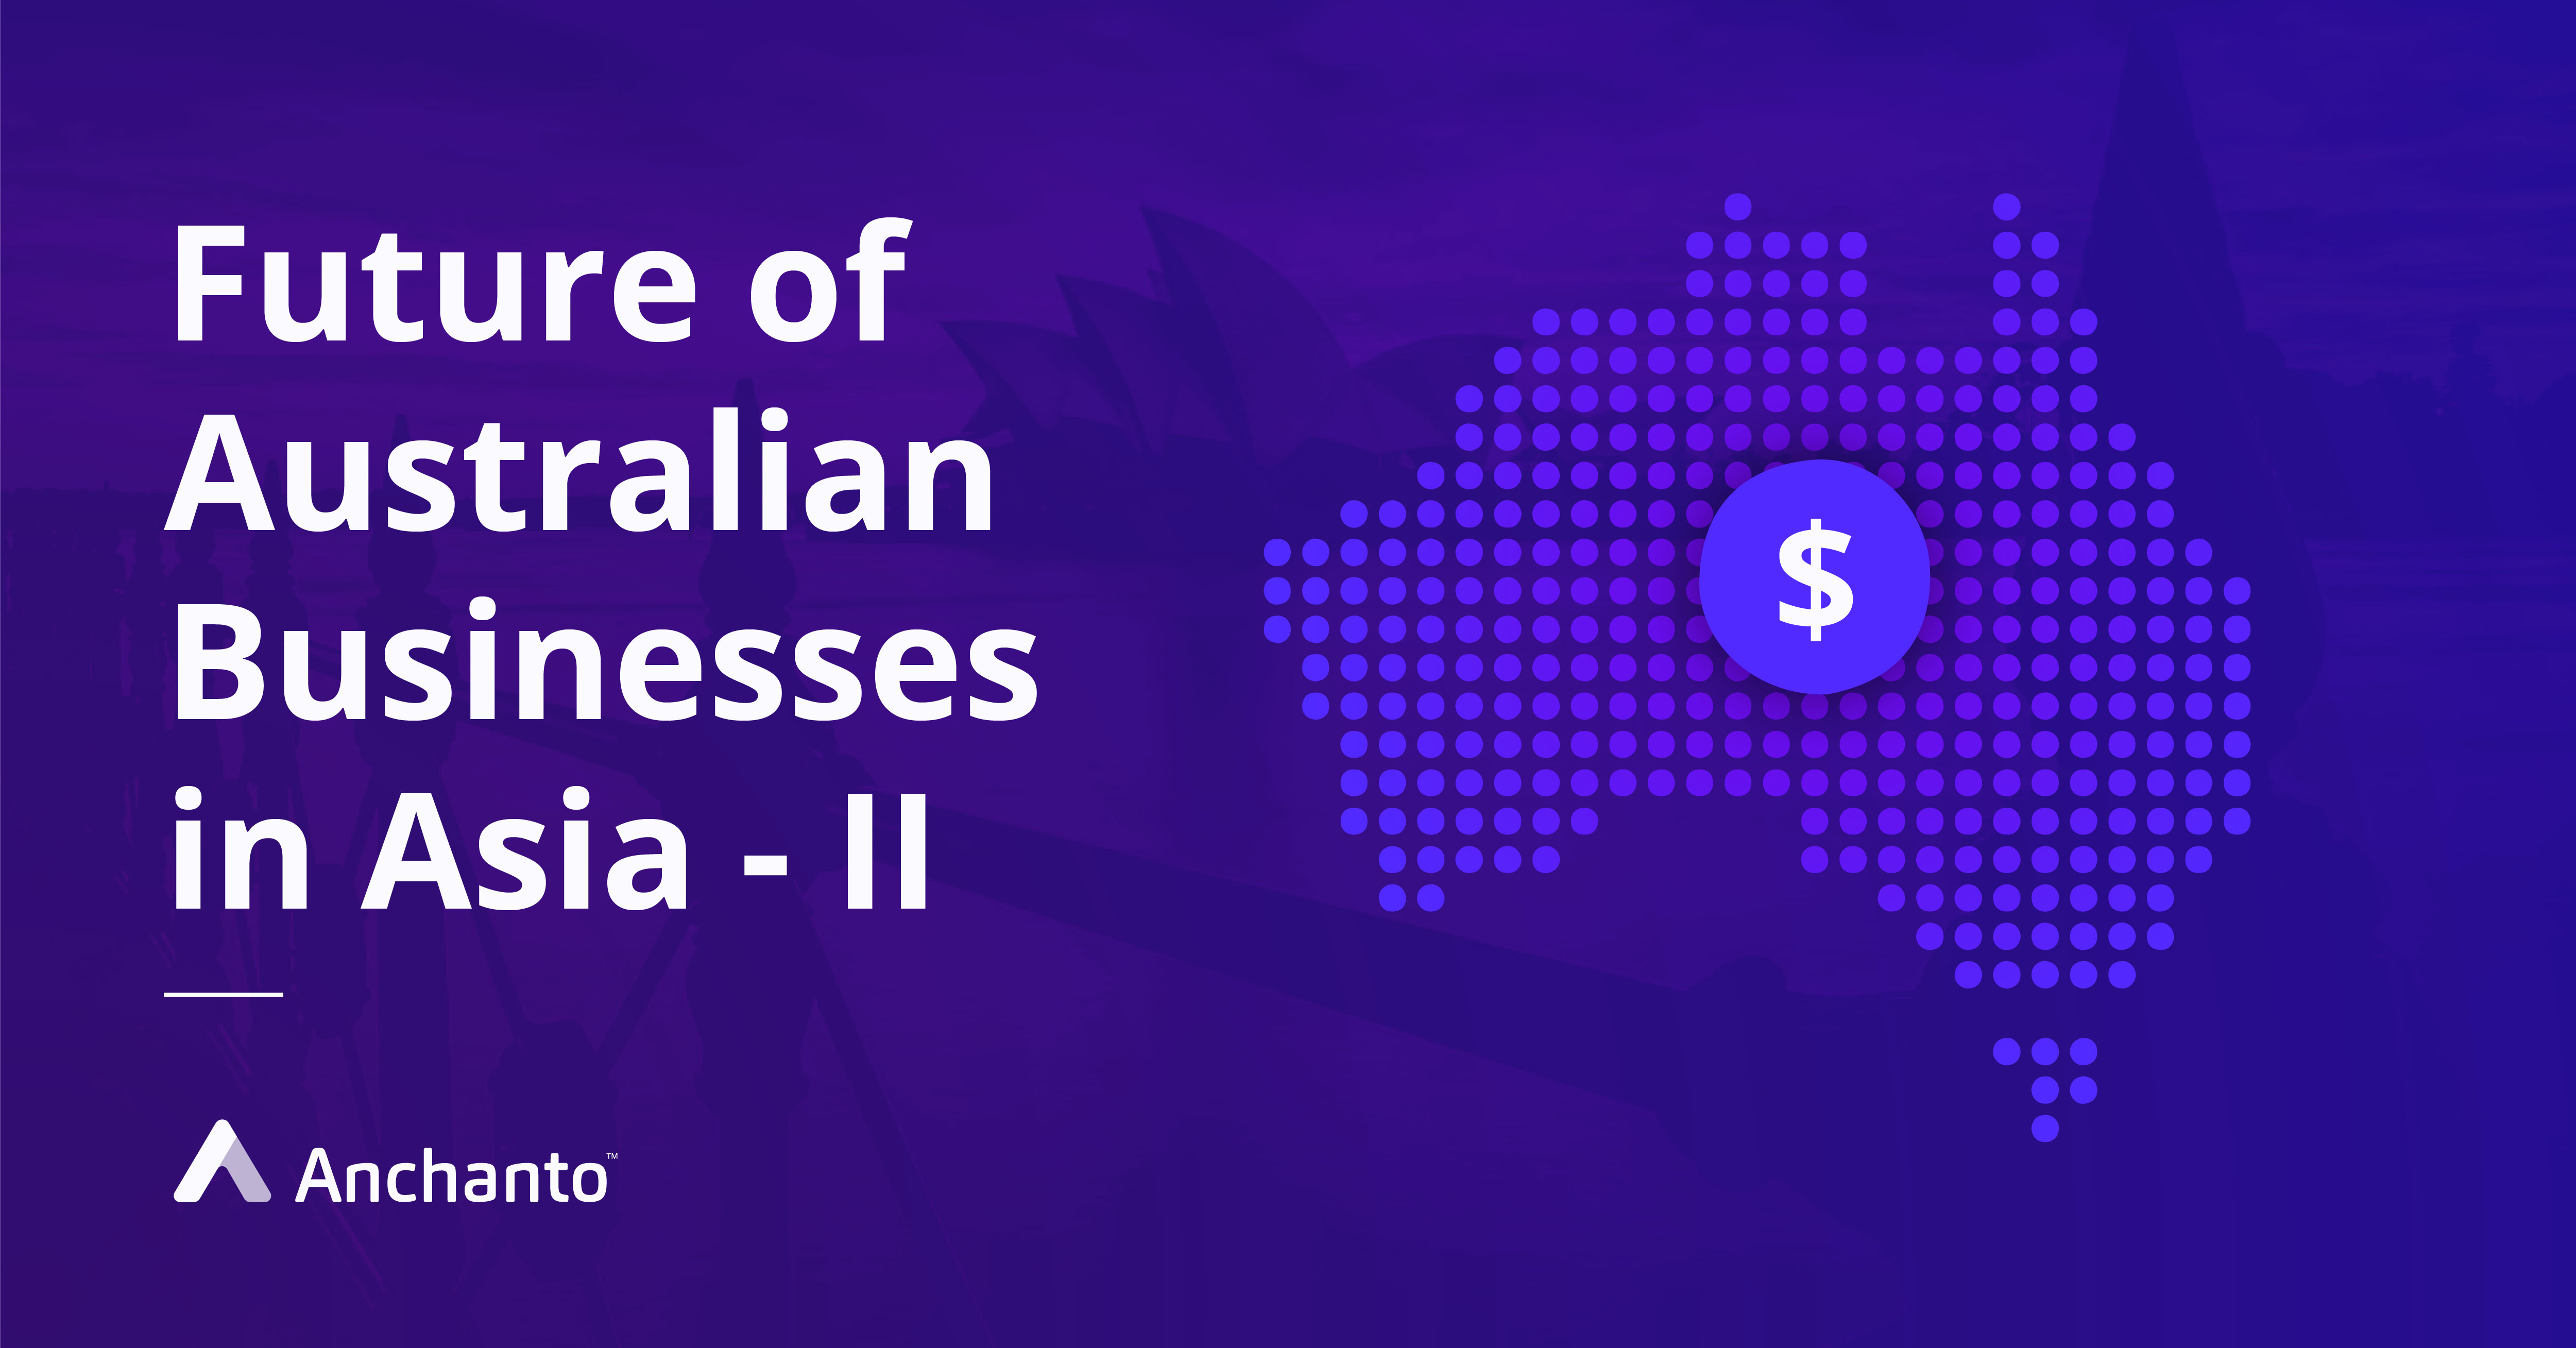 exploring_the_future_of_australian_businesses_in_asia_ii